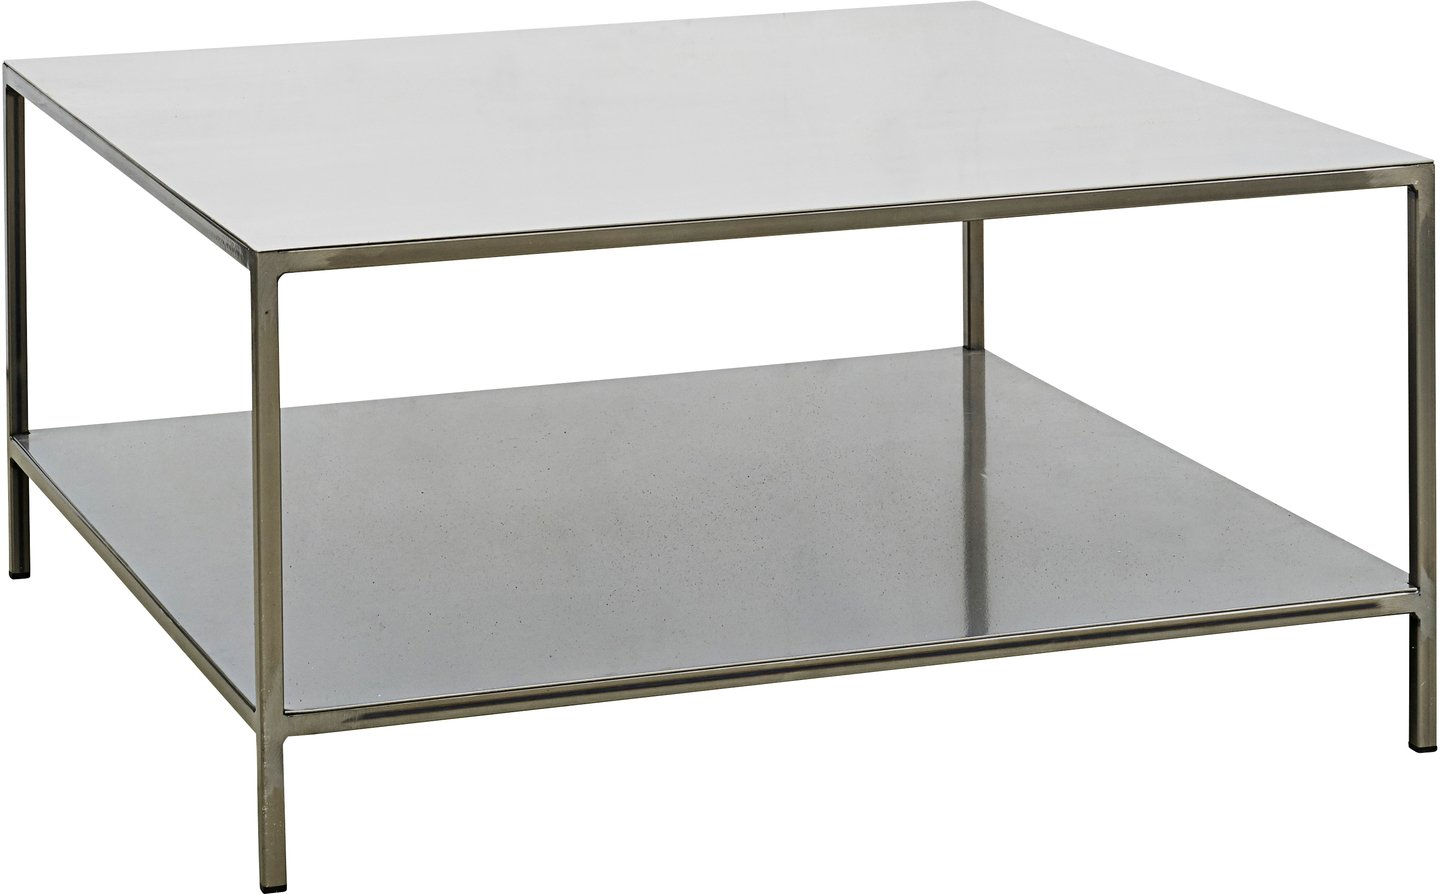 Image of   Coffee Table, Orto by House Doctor (H: 42 cm. B: 85 cm. L: 85 cm., Jern)